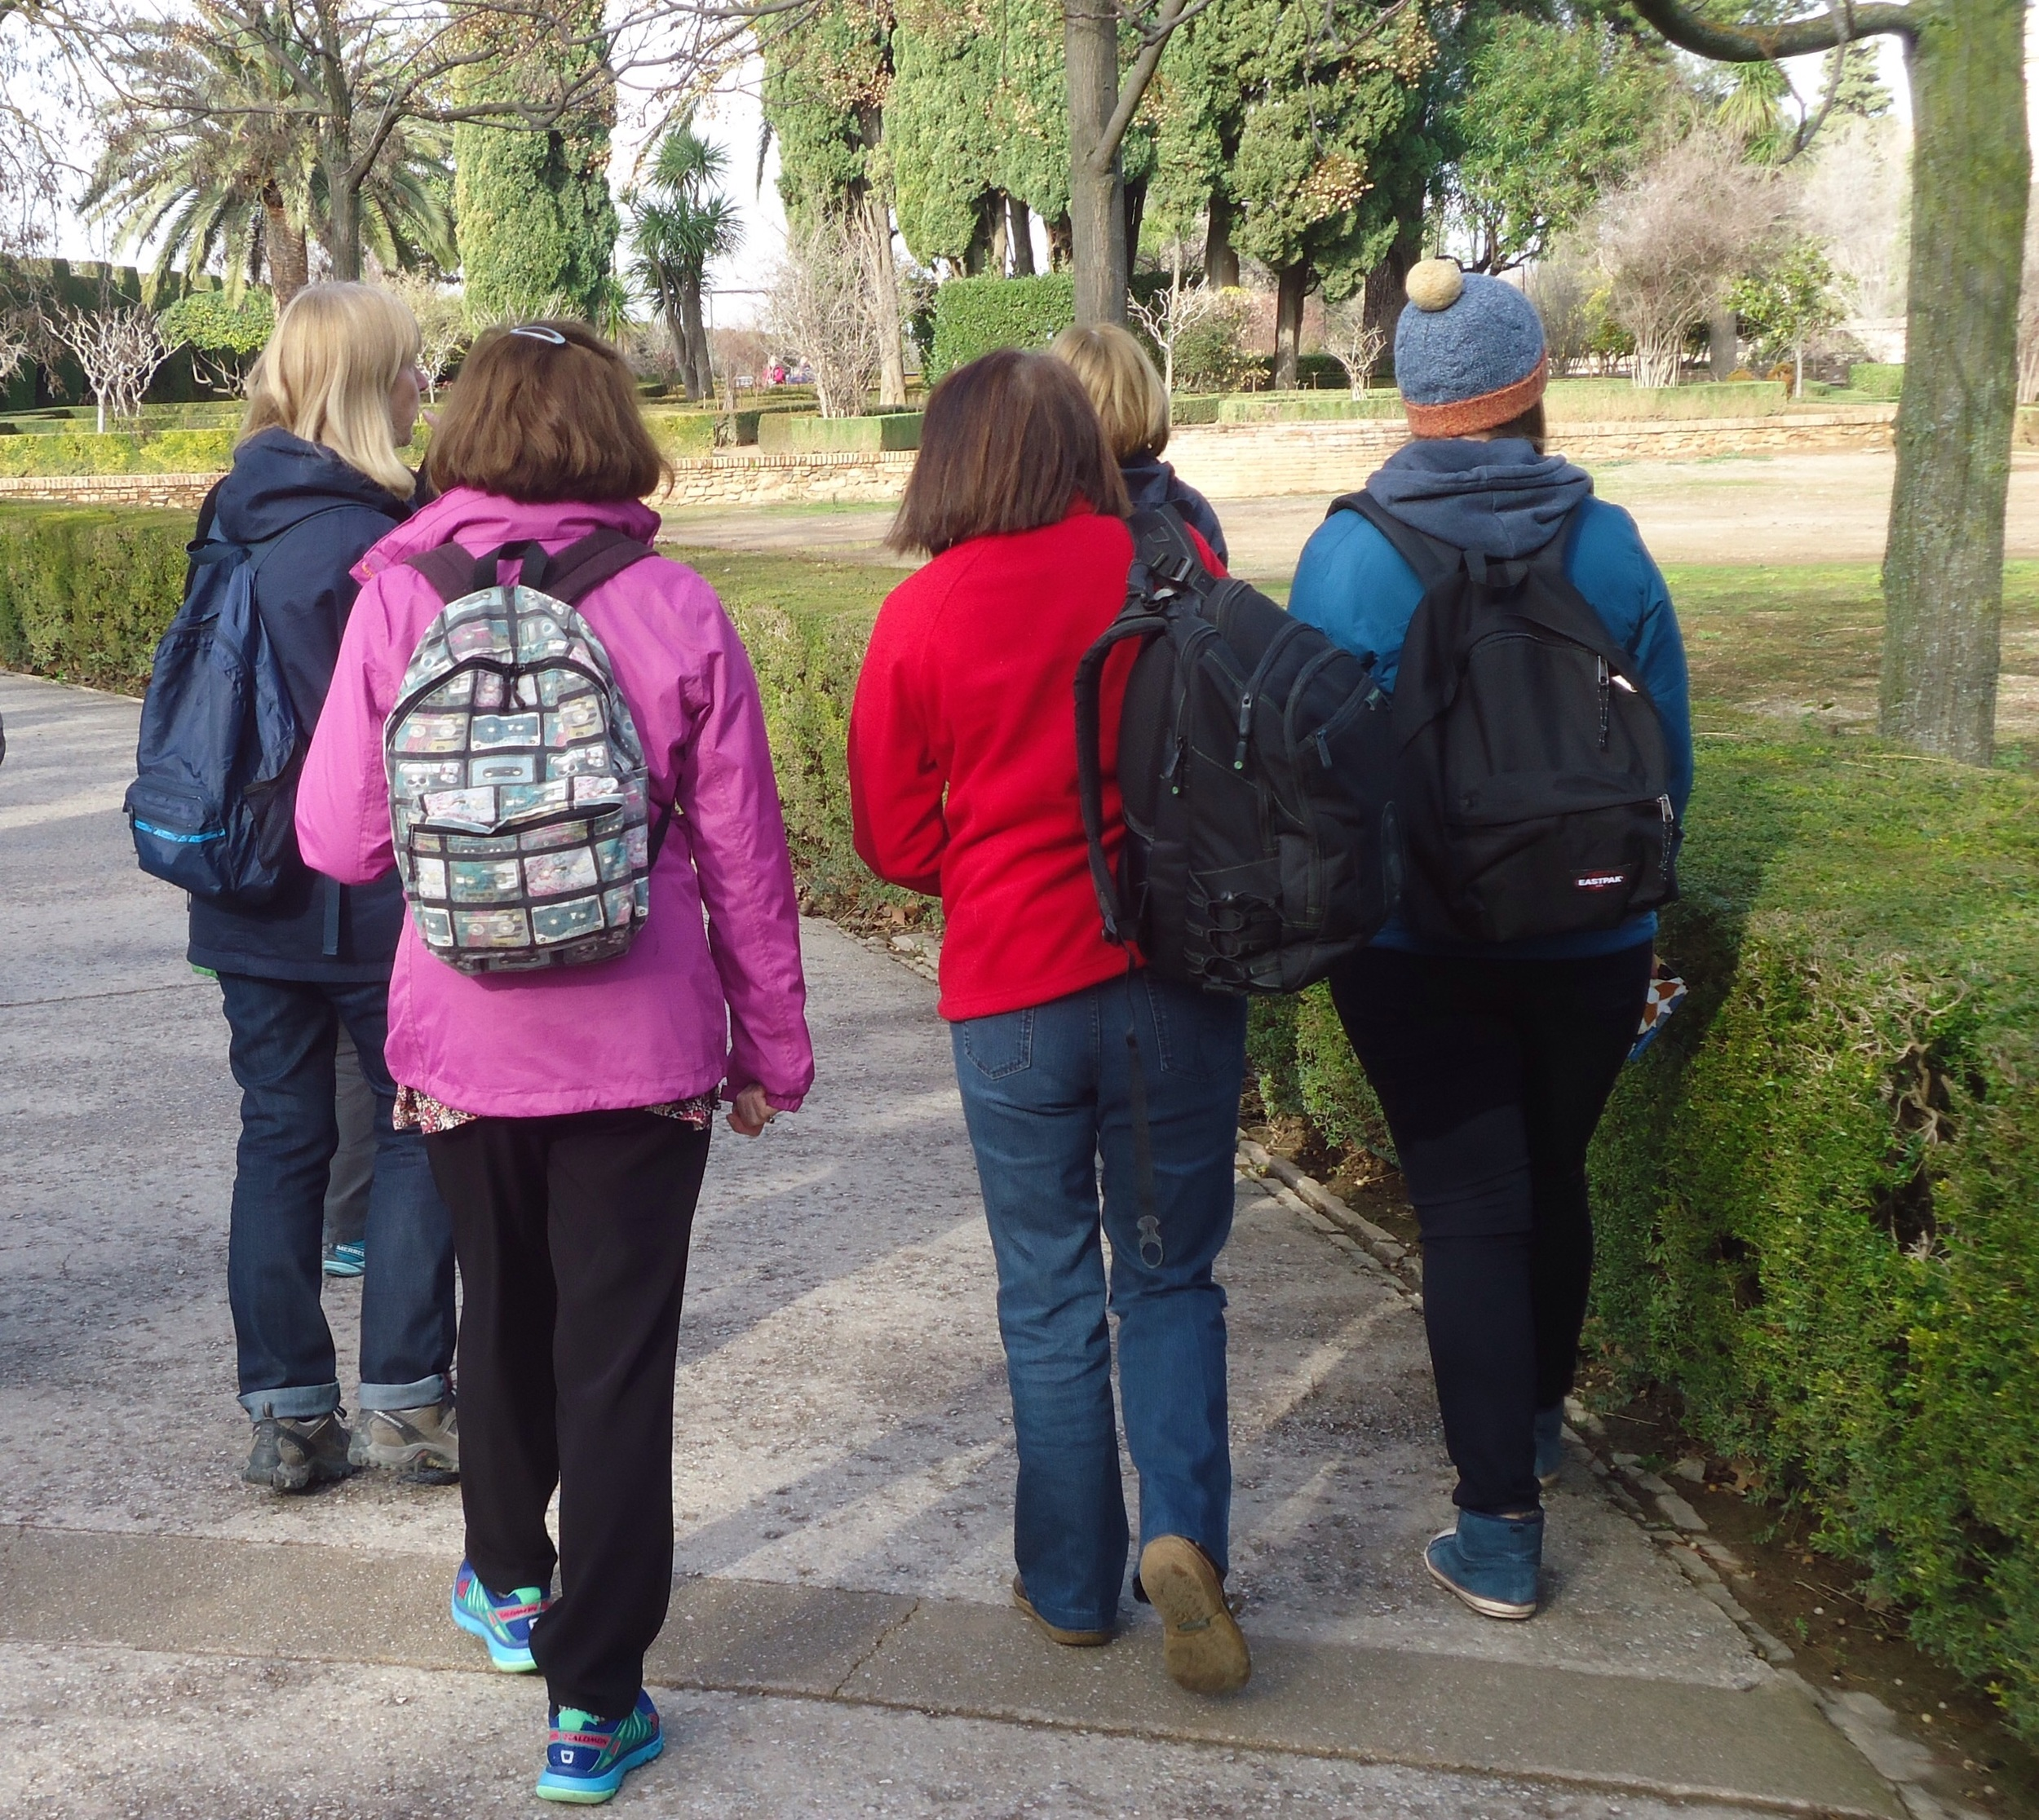 Heading into the Alhambra gardens...